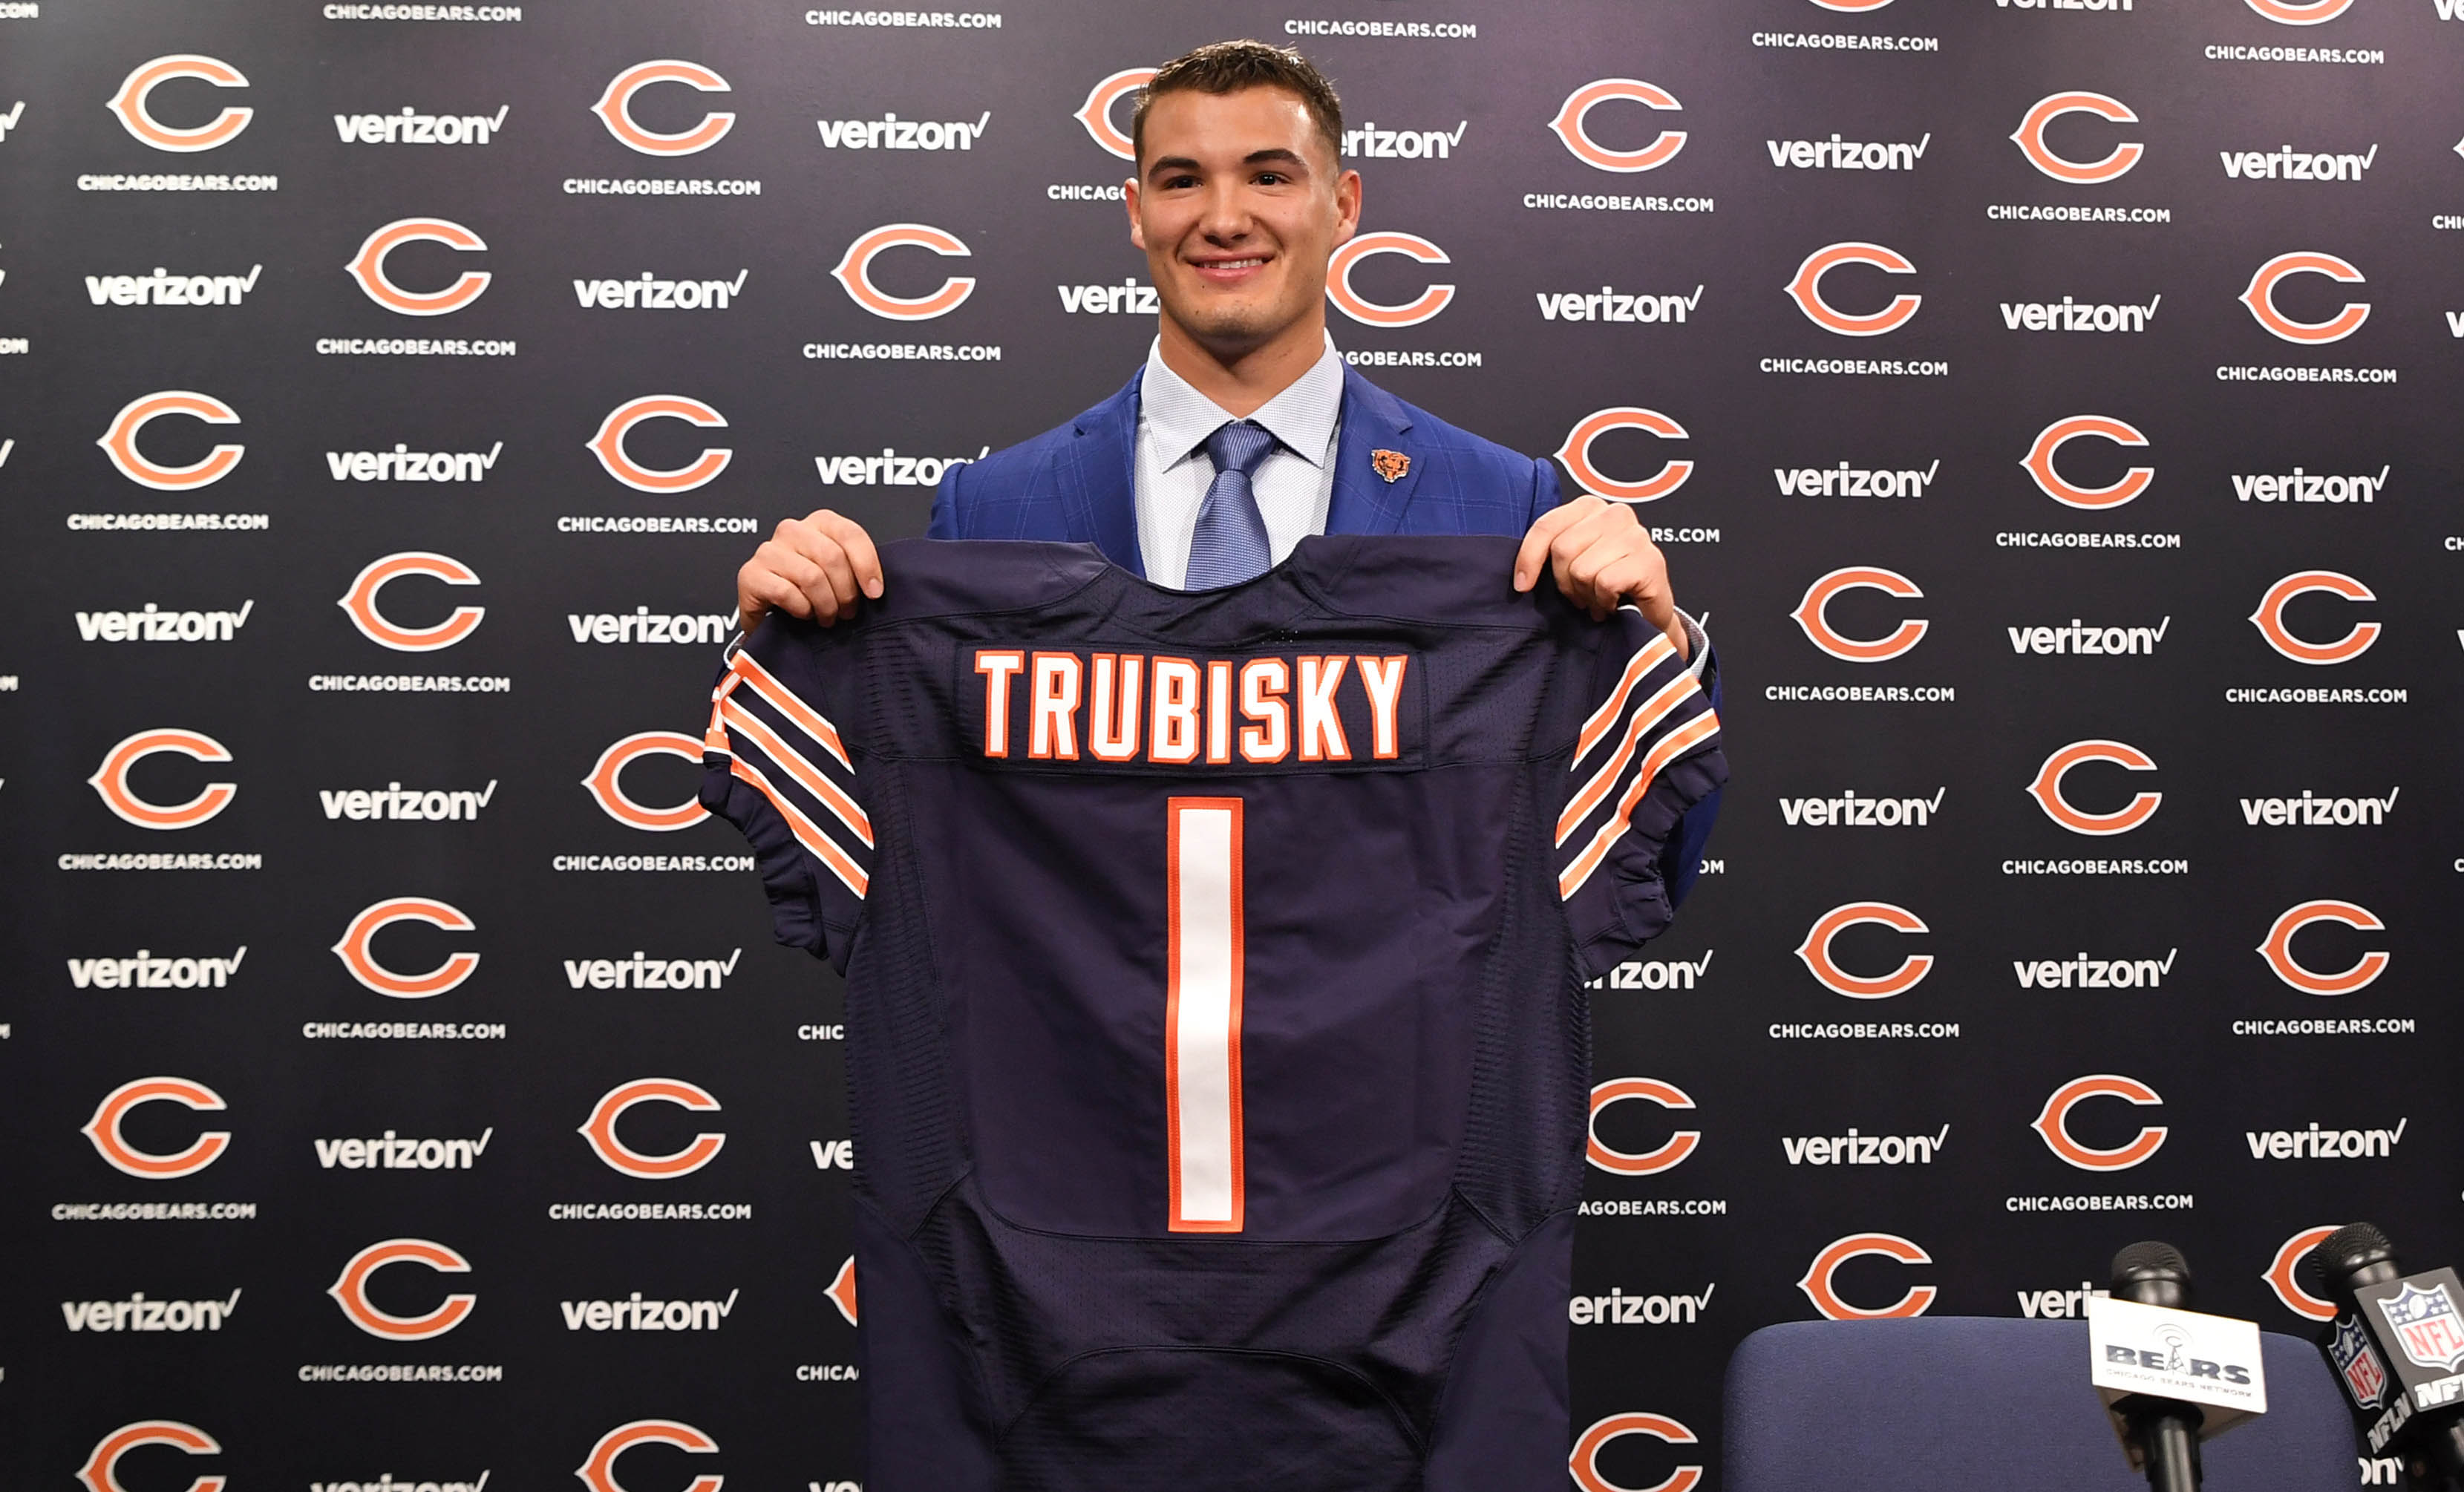 10034402-nfl-chicago-bears-mitchell-trubisky-press-conference